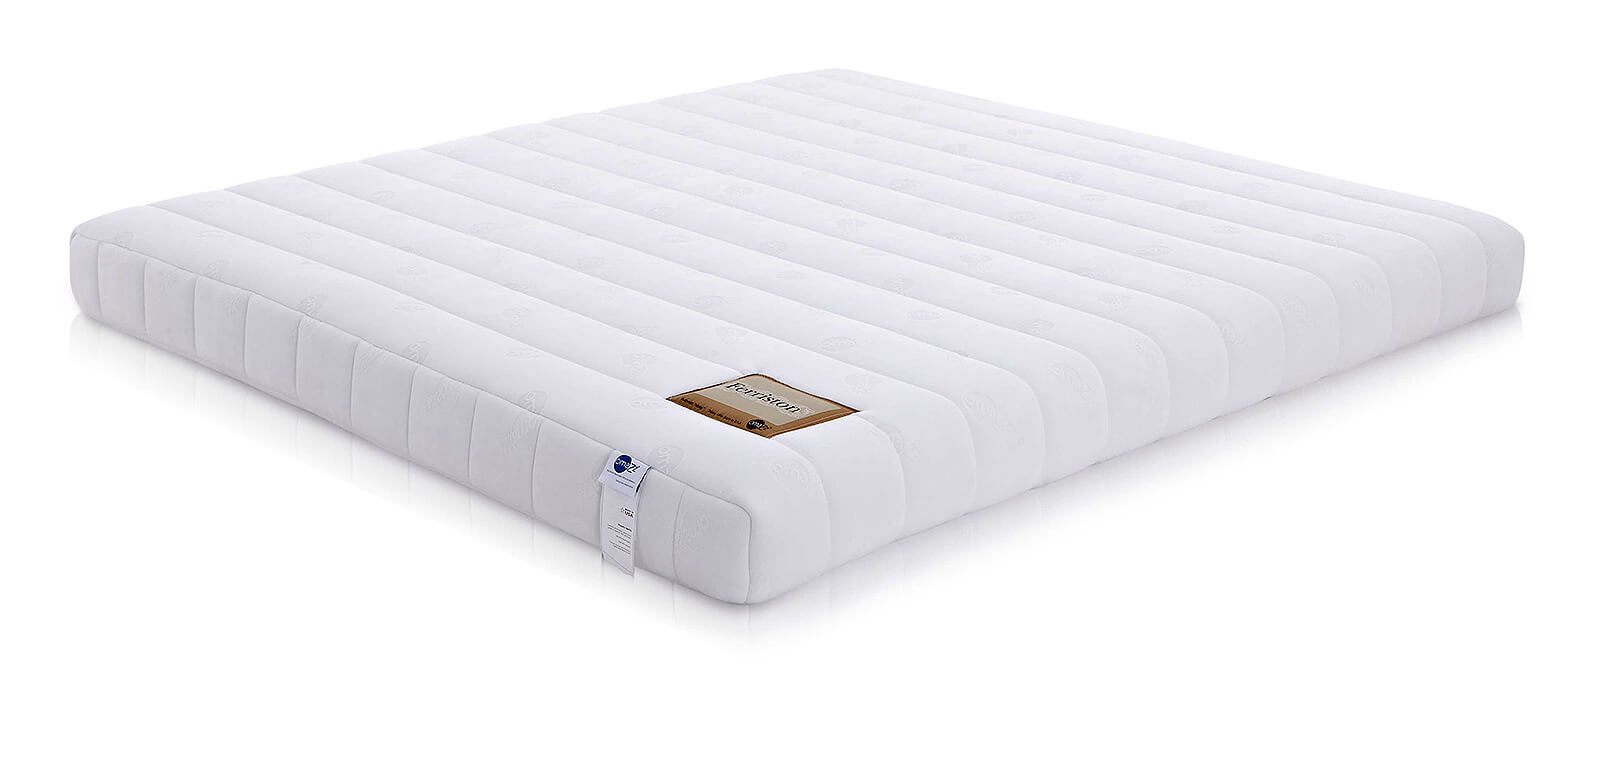 omazz-mattress-ferriston-7